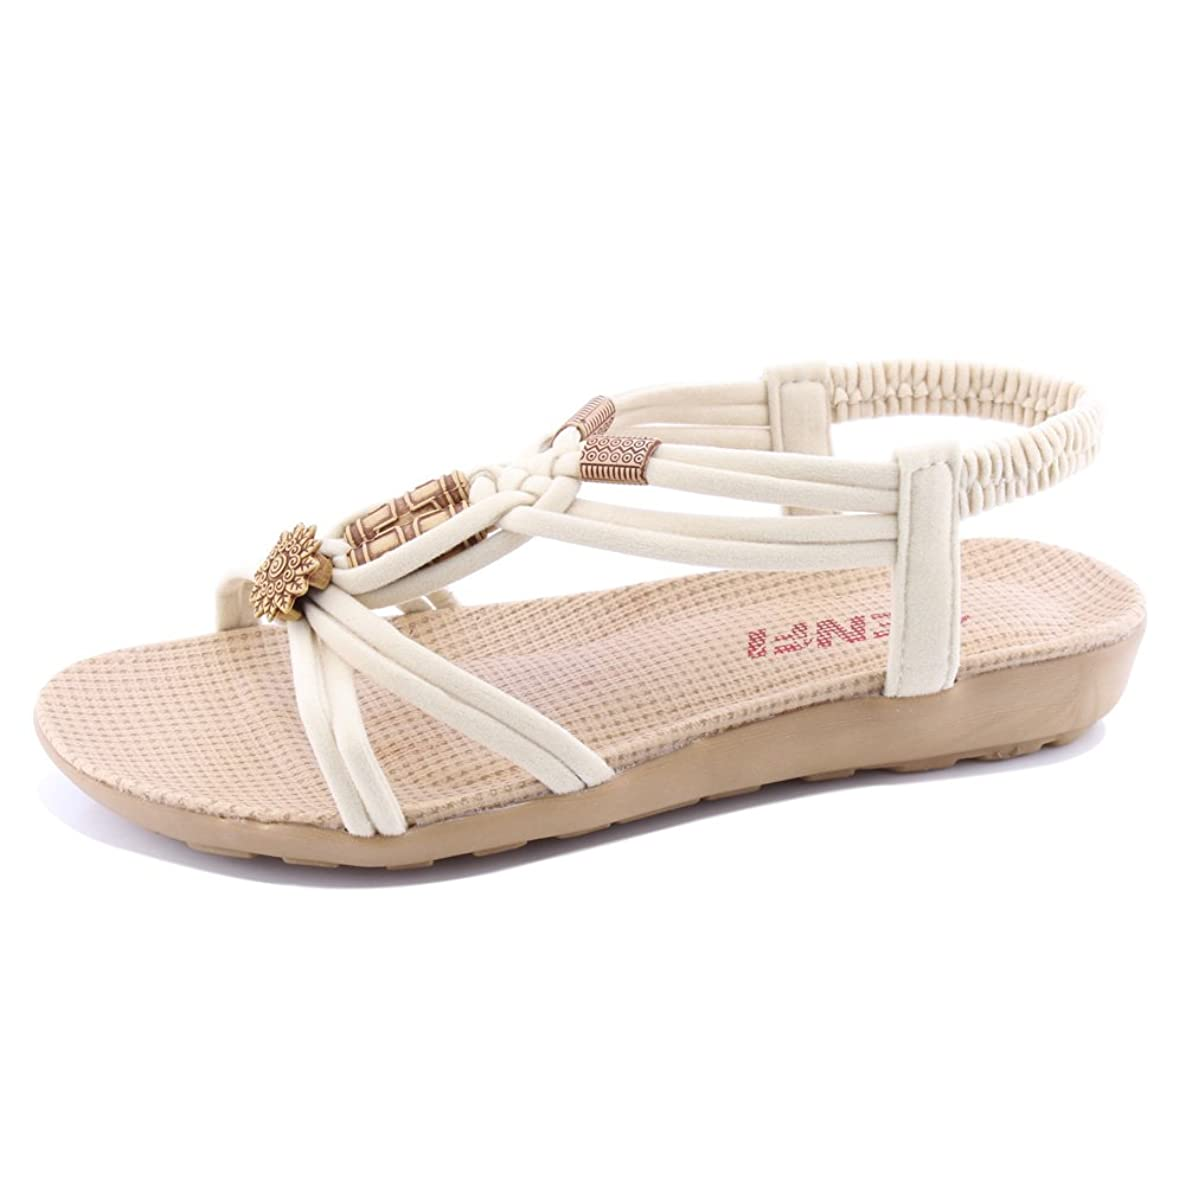 SENFI Women Summer Bohemia Elastic Strappy String Sandals